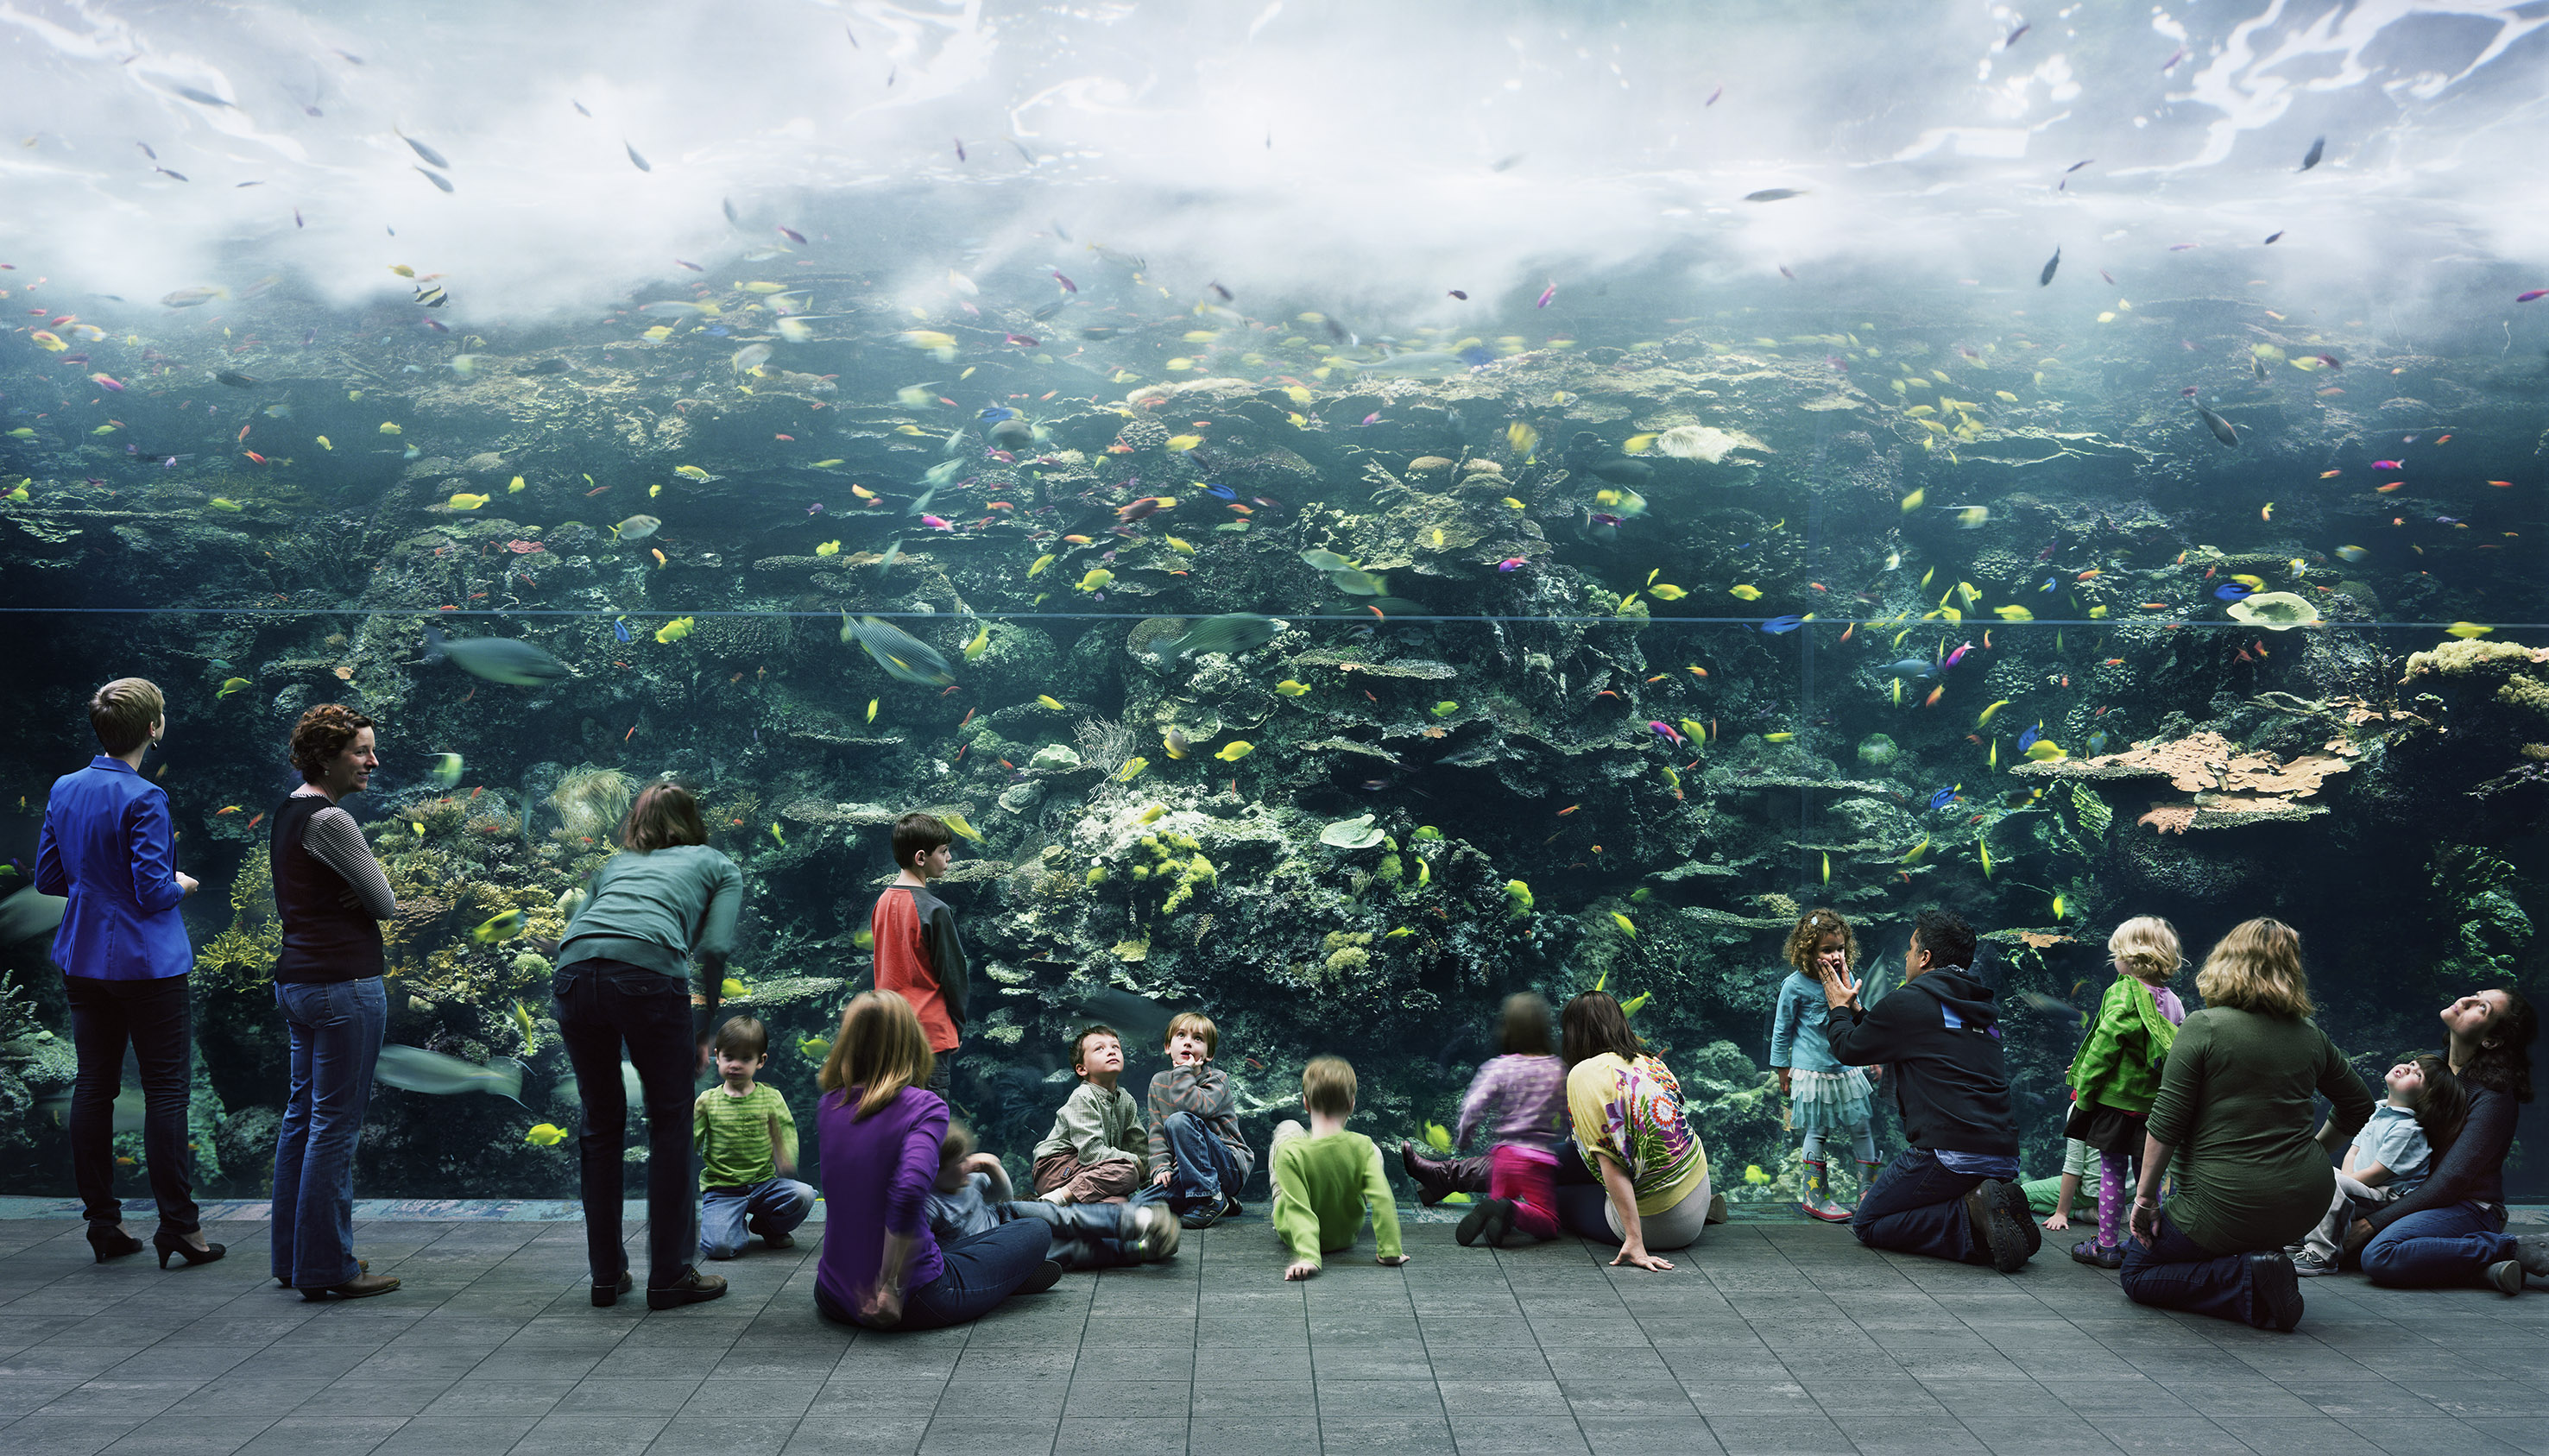 Acquarium, Atlanta 2013 © Thomas Struth